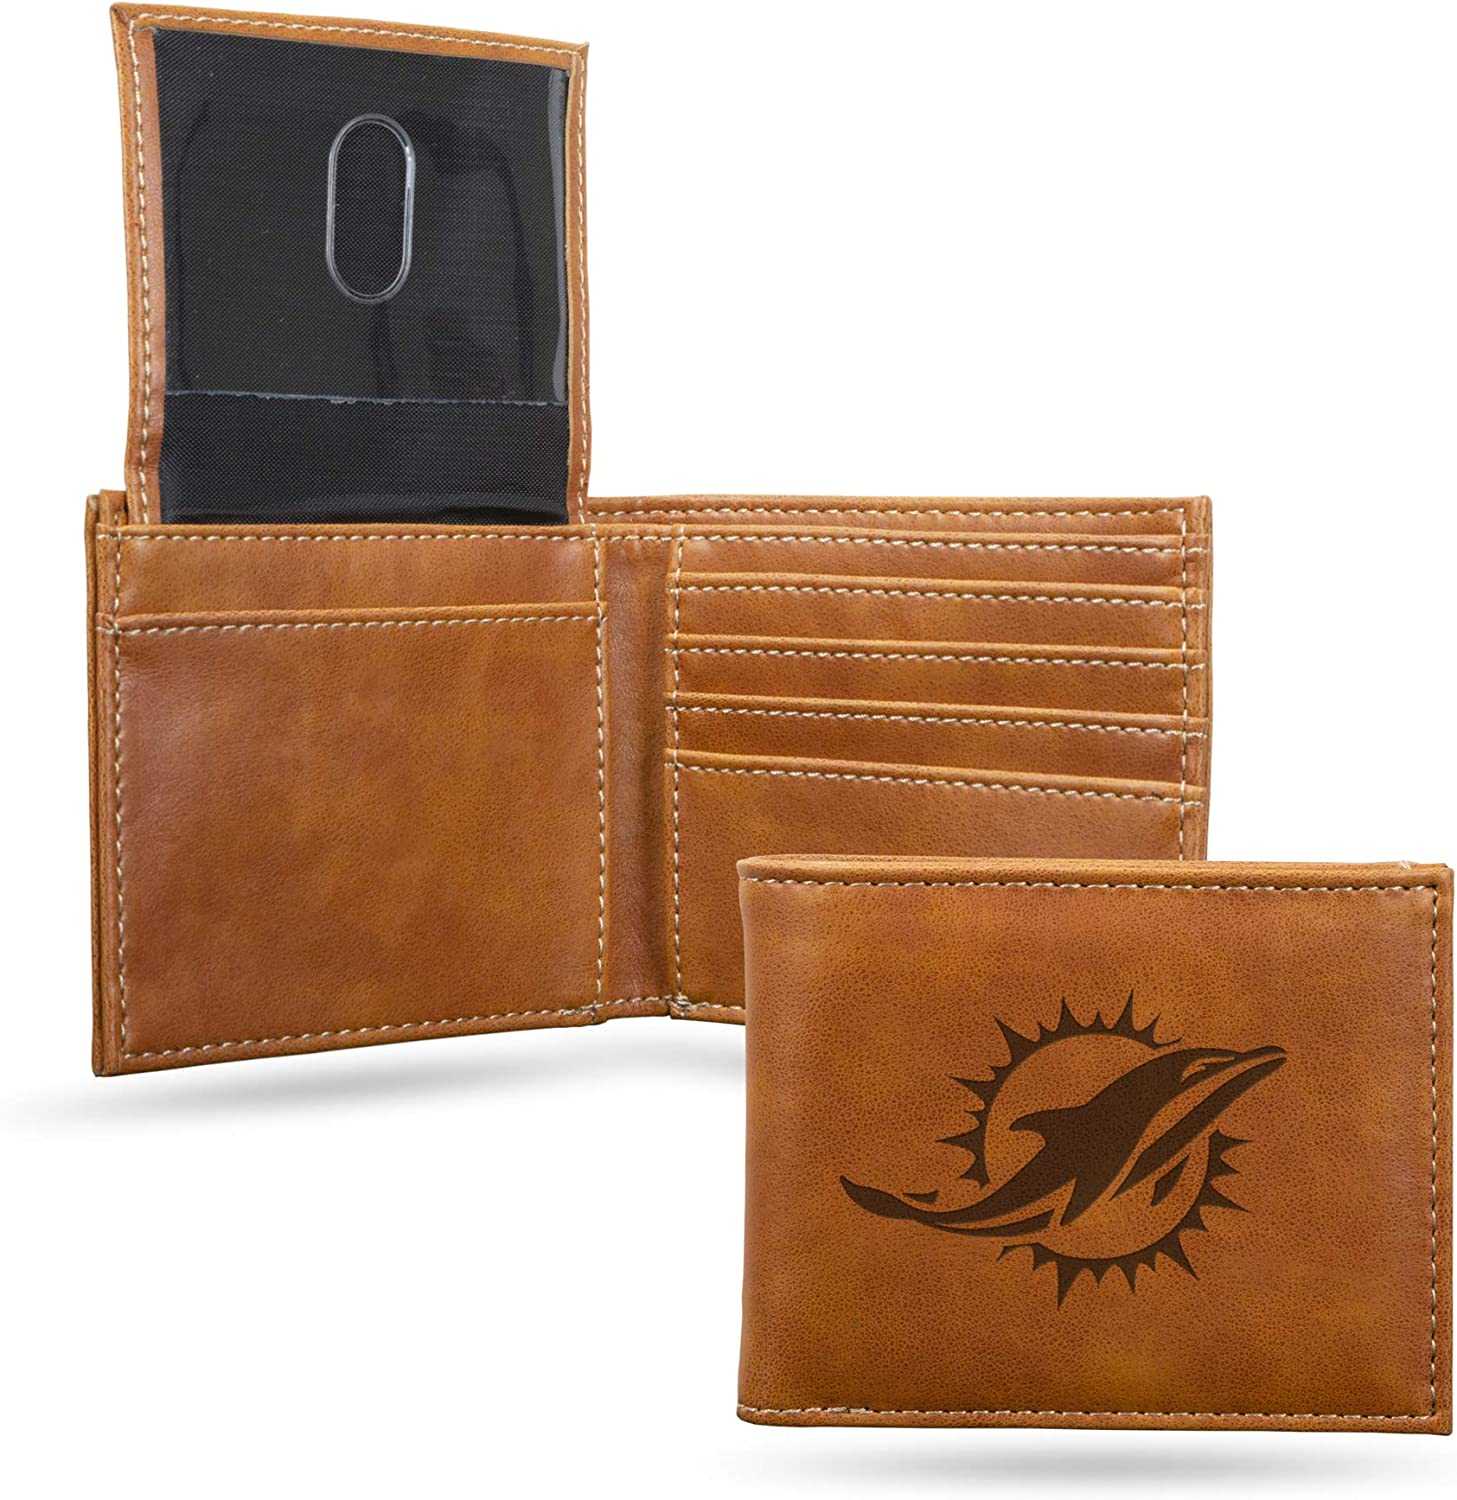 Rico Industries Quality inspection unisex NFL Miami Mail order Billfol Engraved Dolphins Laser